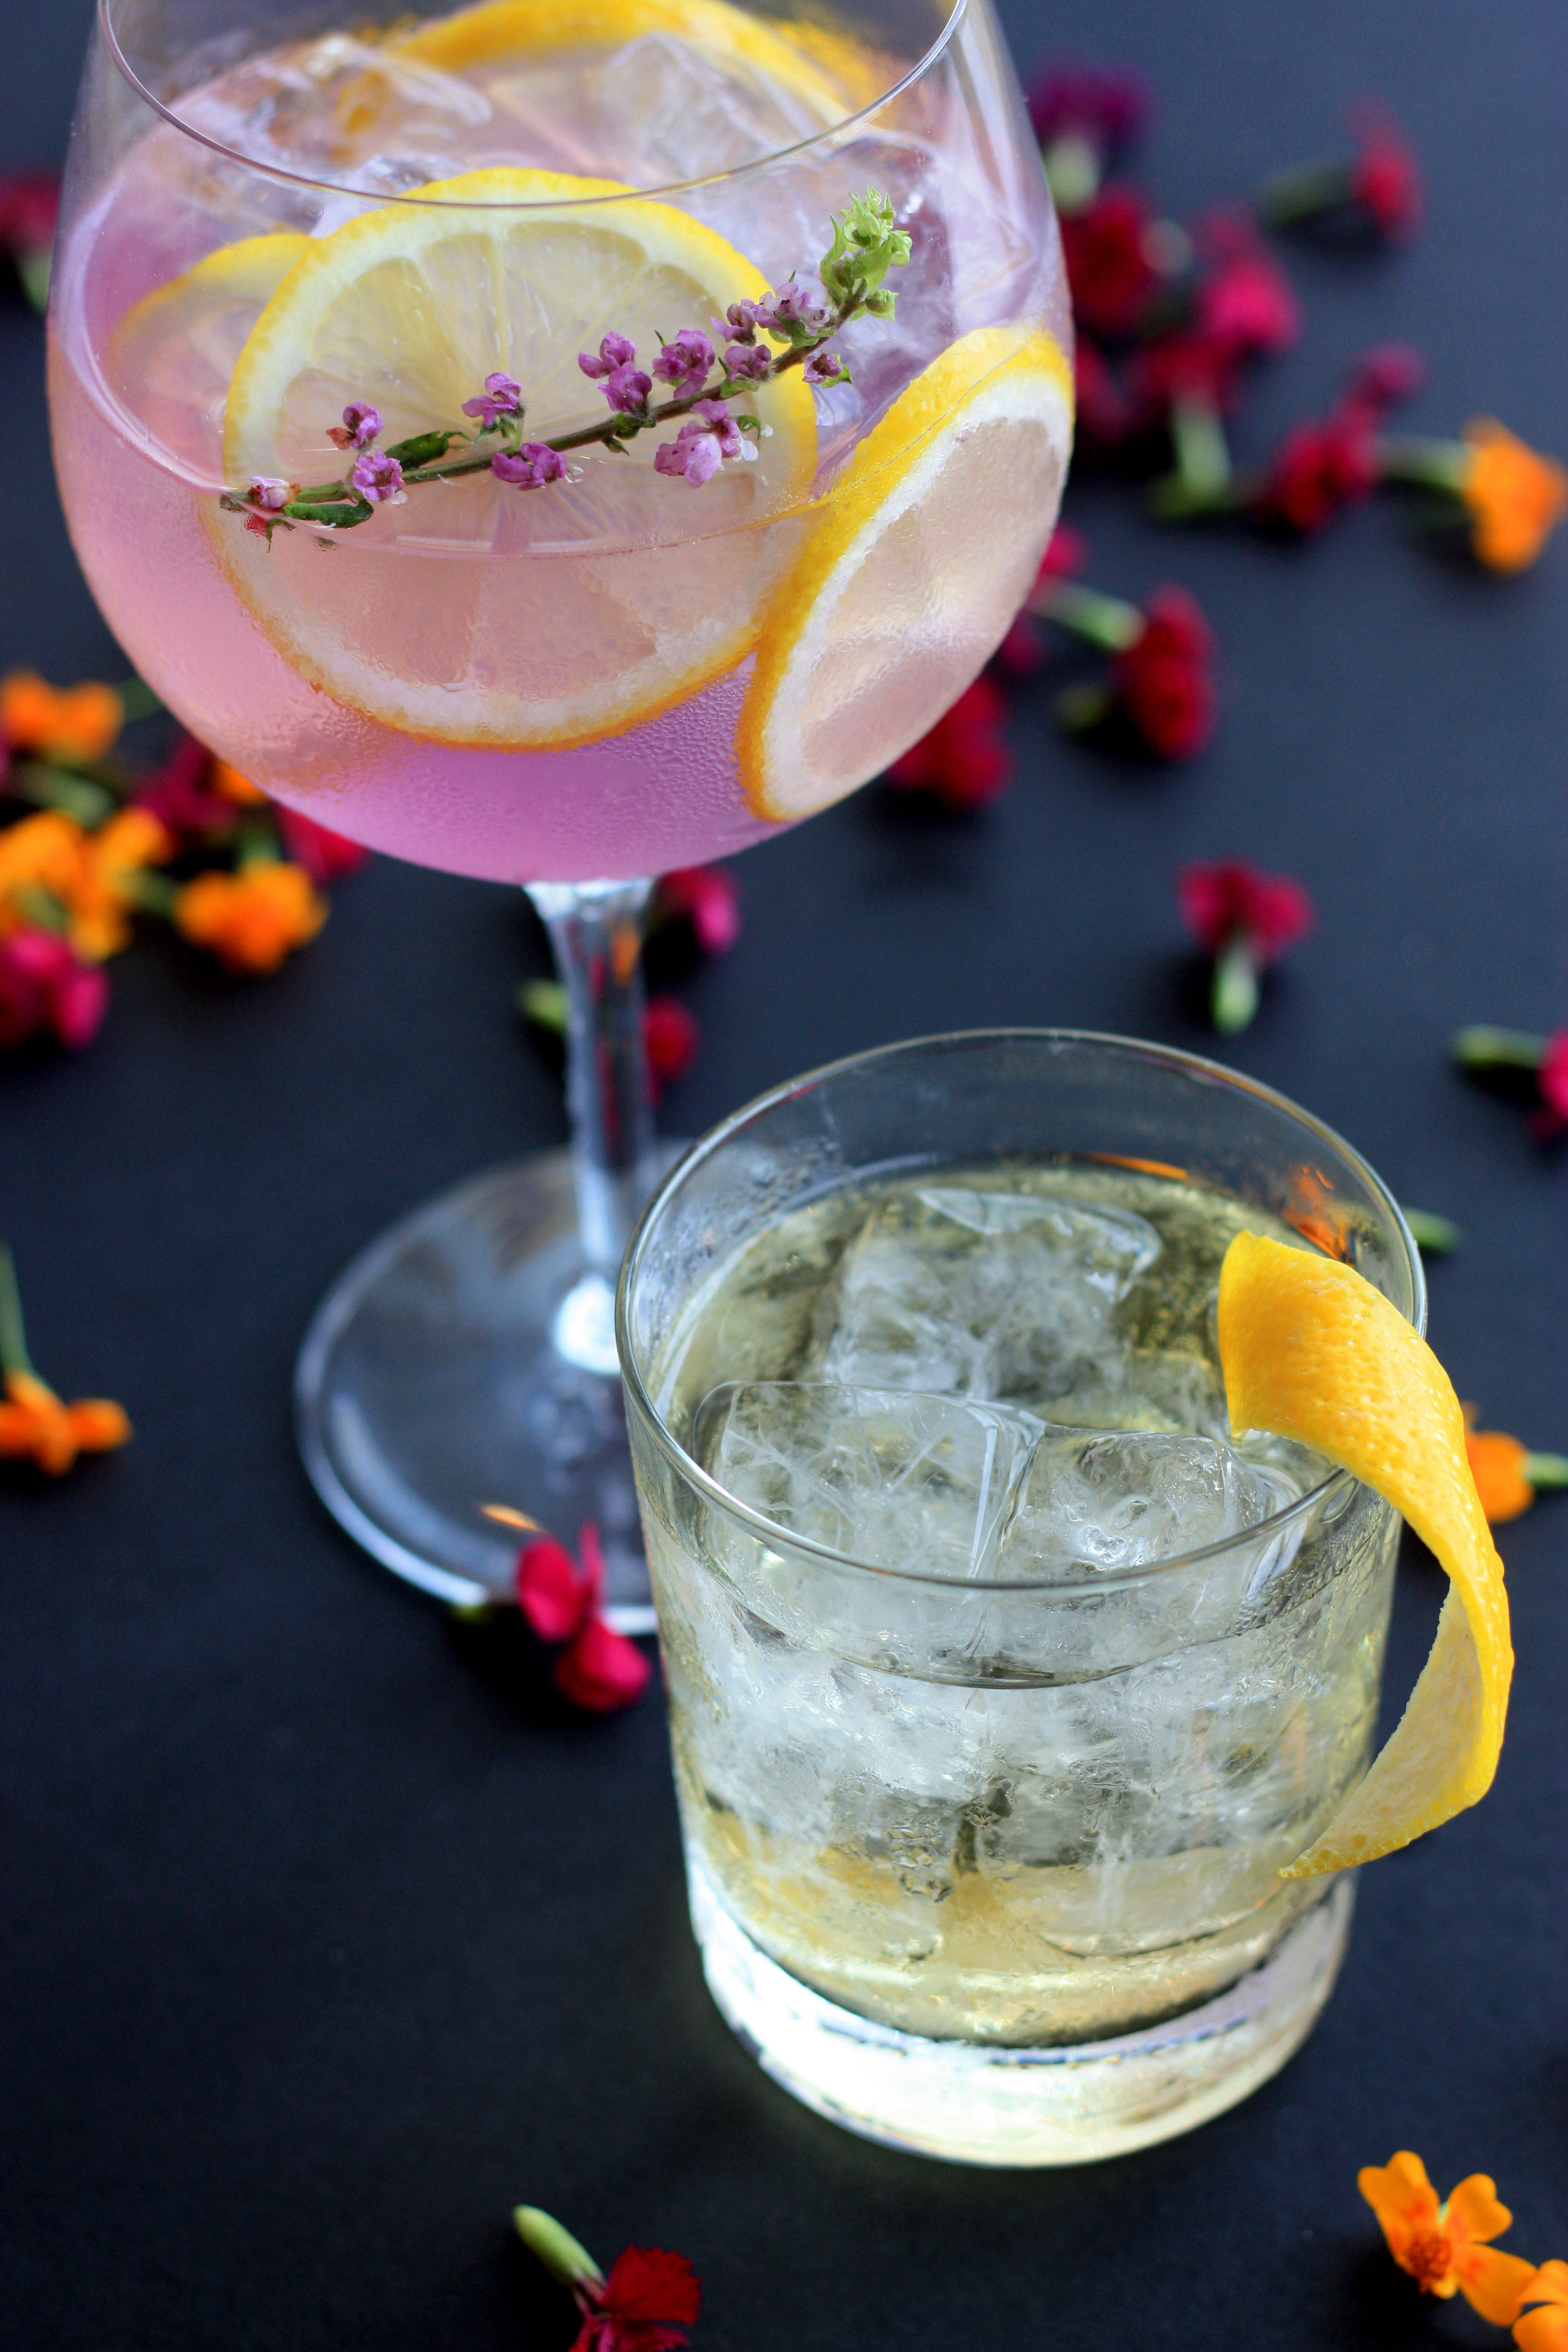 A touch of lavender elevates lemonade into something special. Enjoy it on its own or use as a base for cocktails.